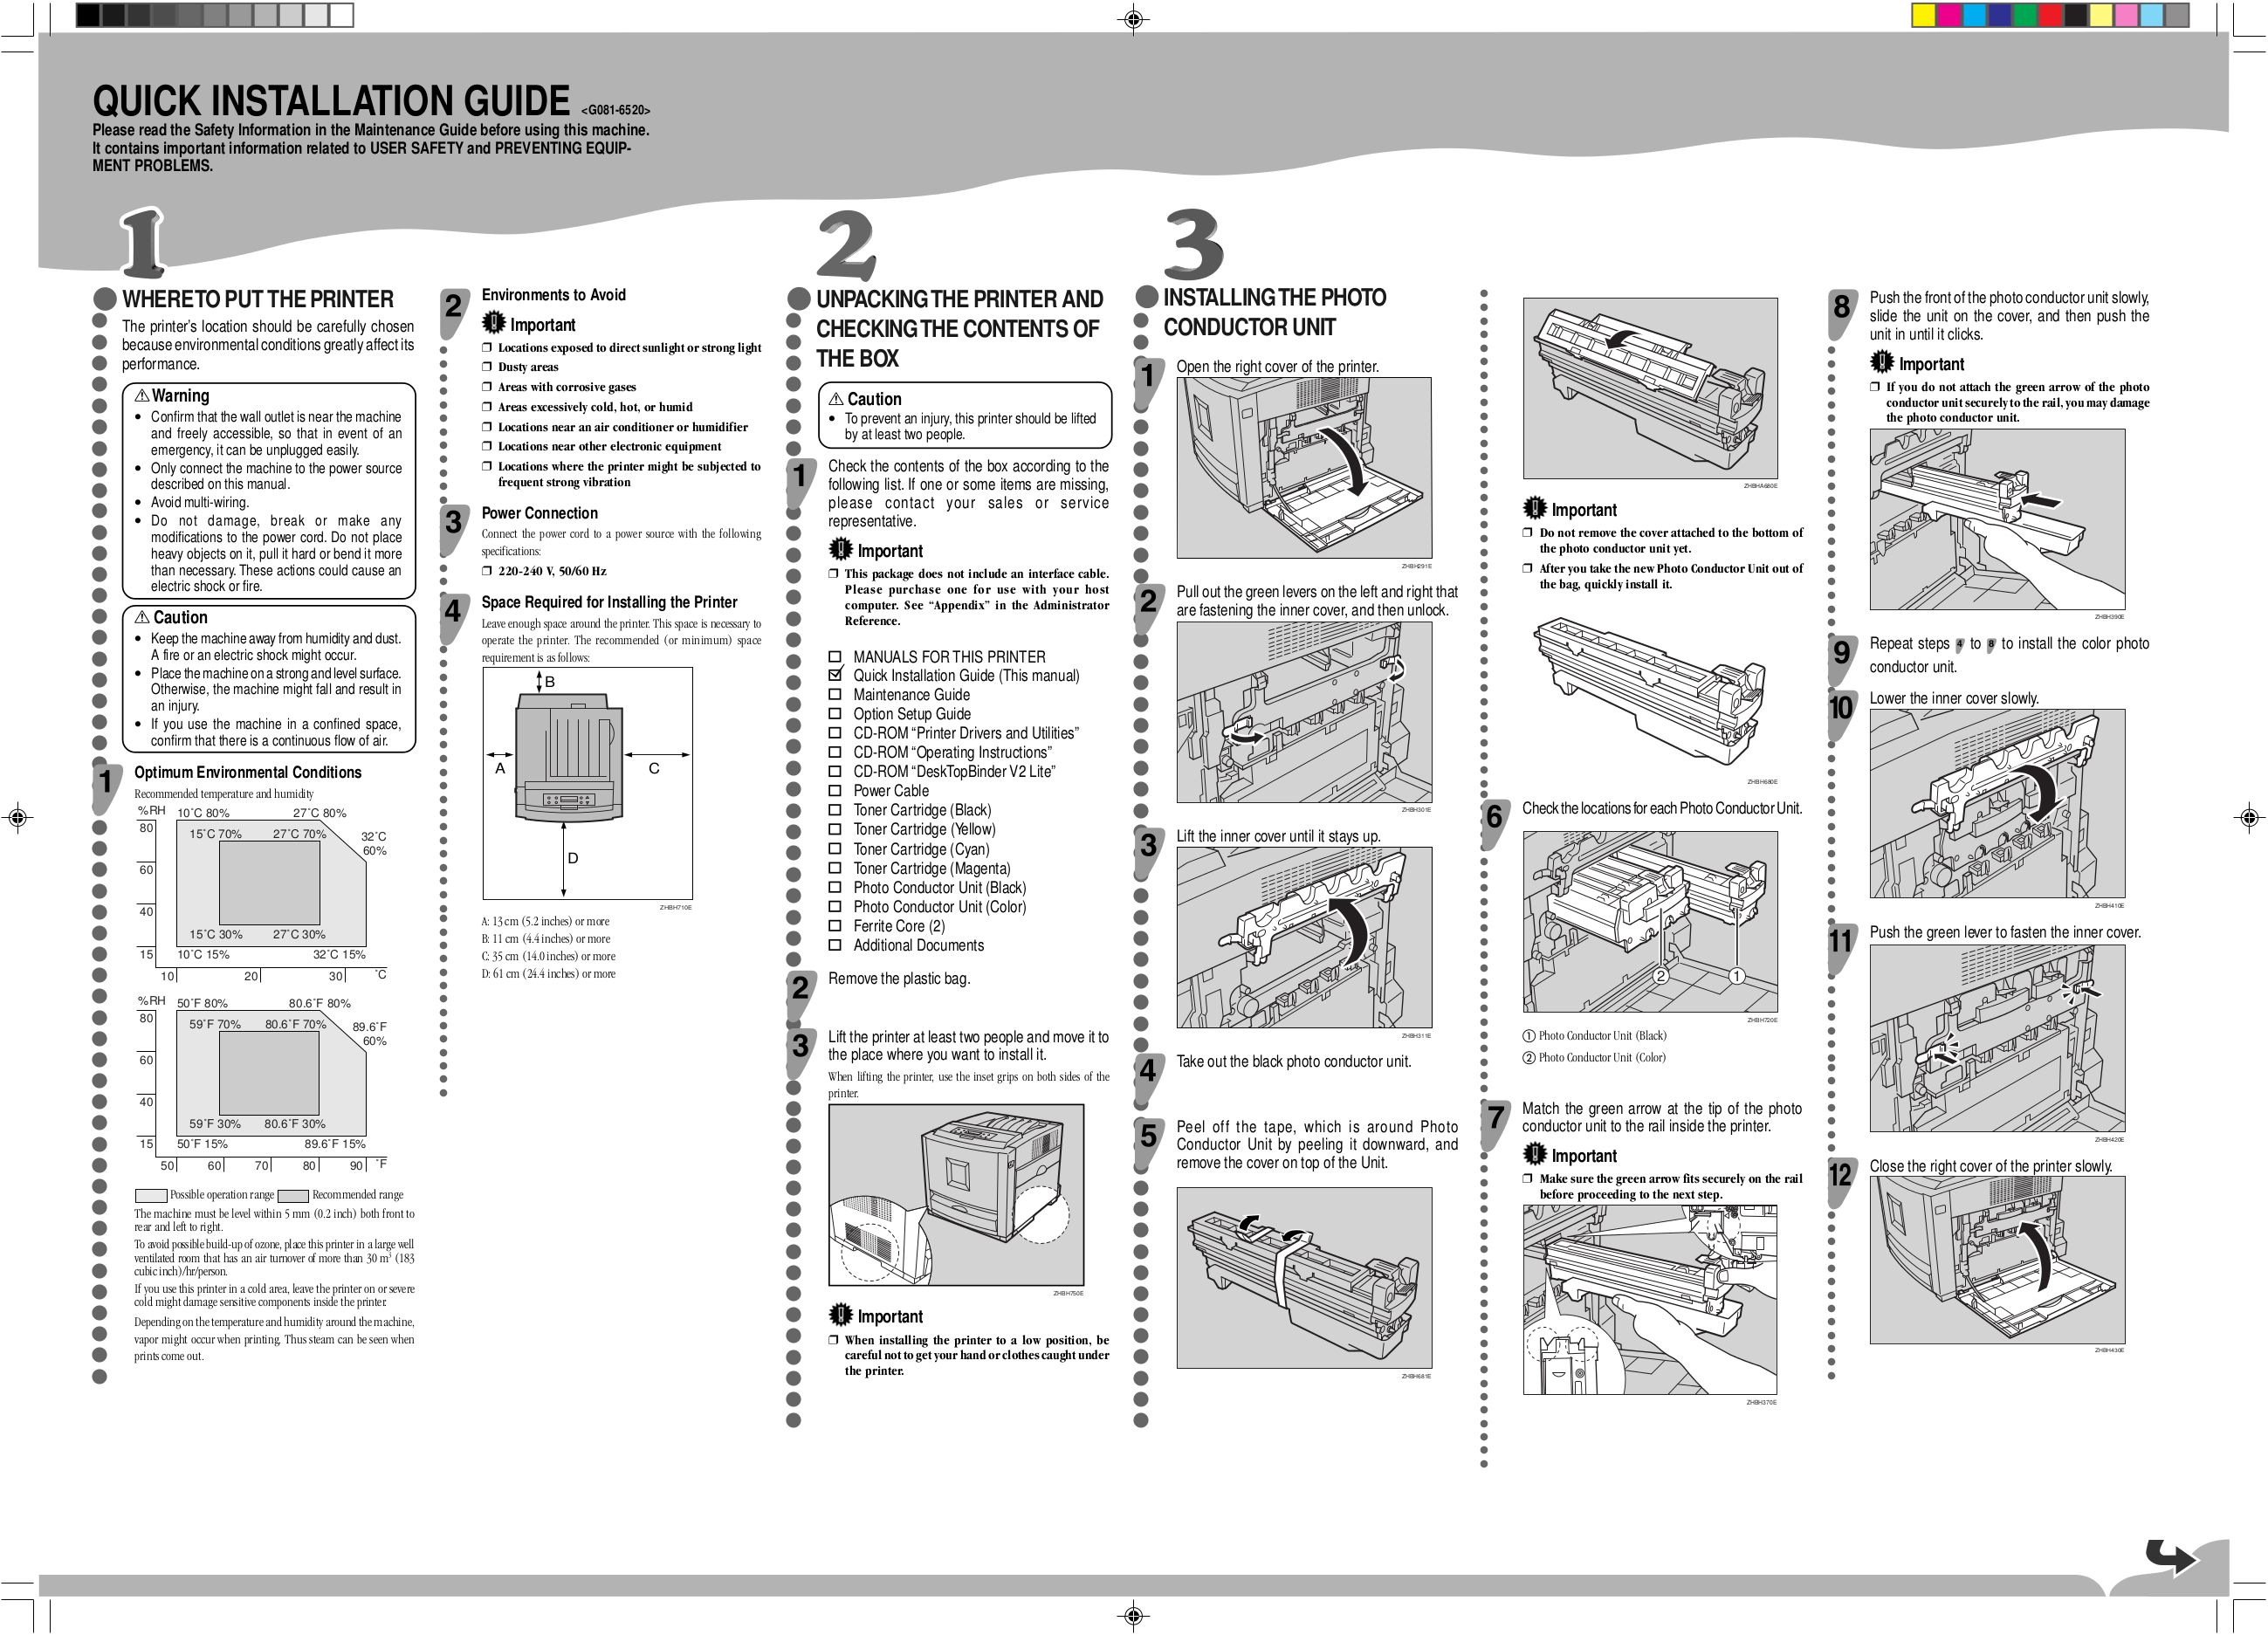 A Little Wiring Preview Manual Guide